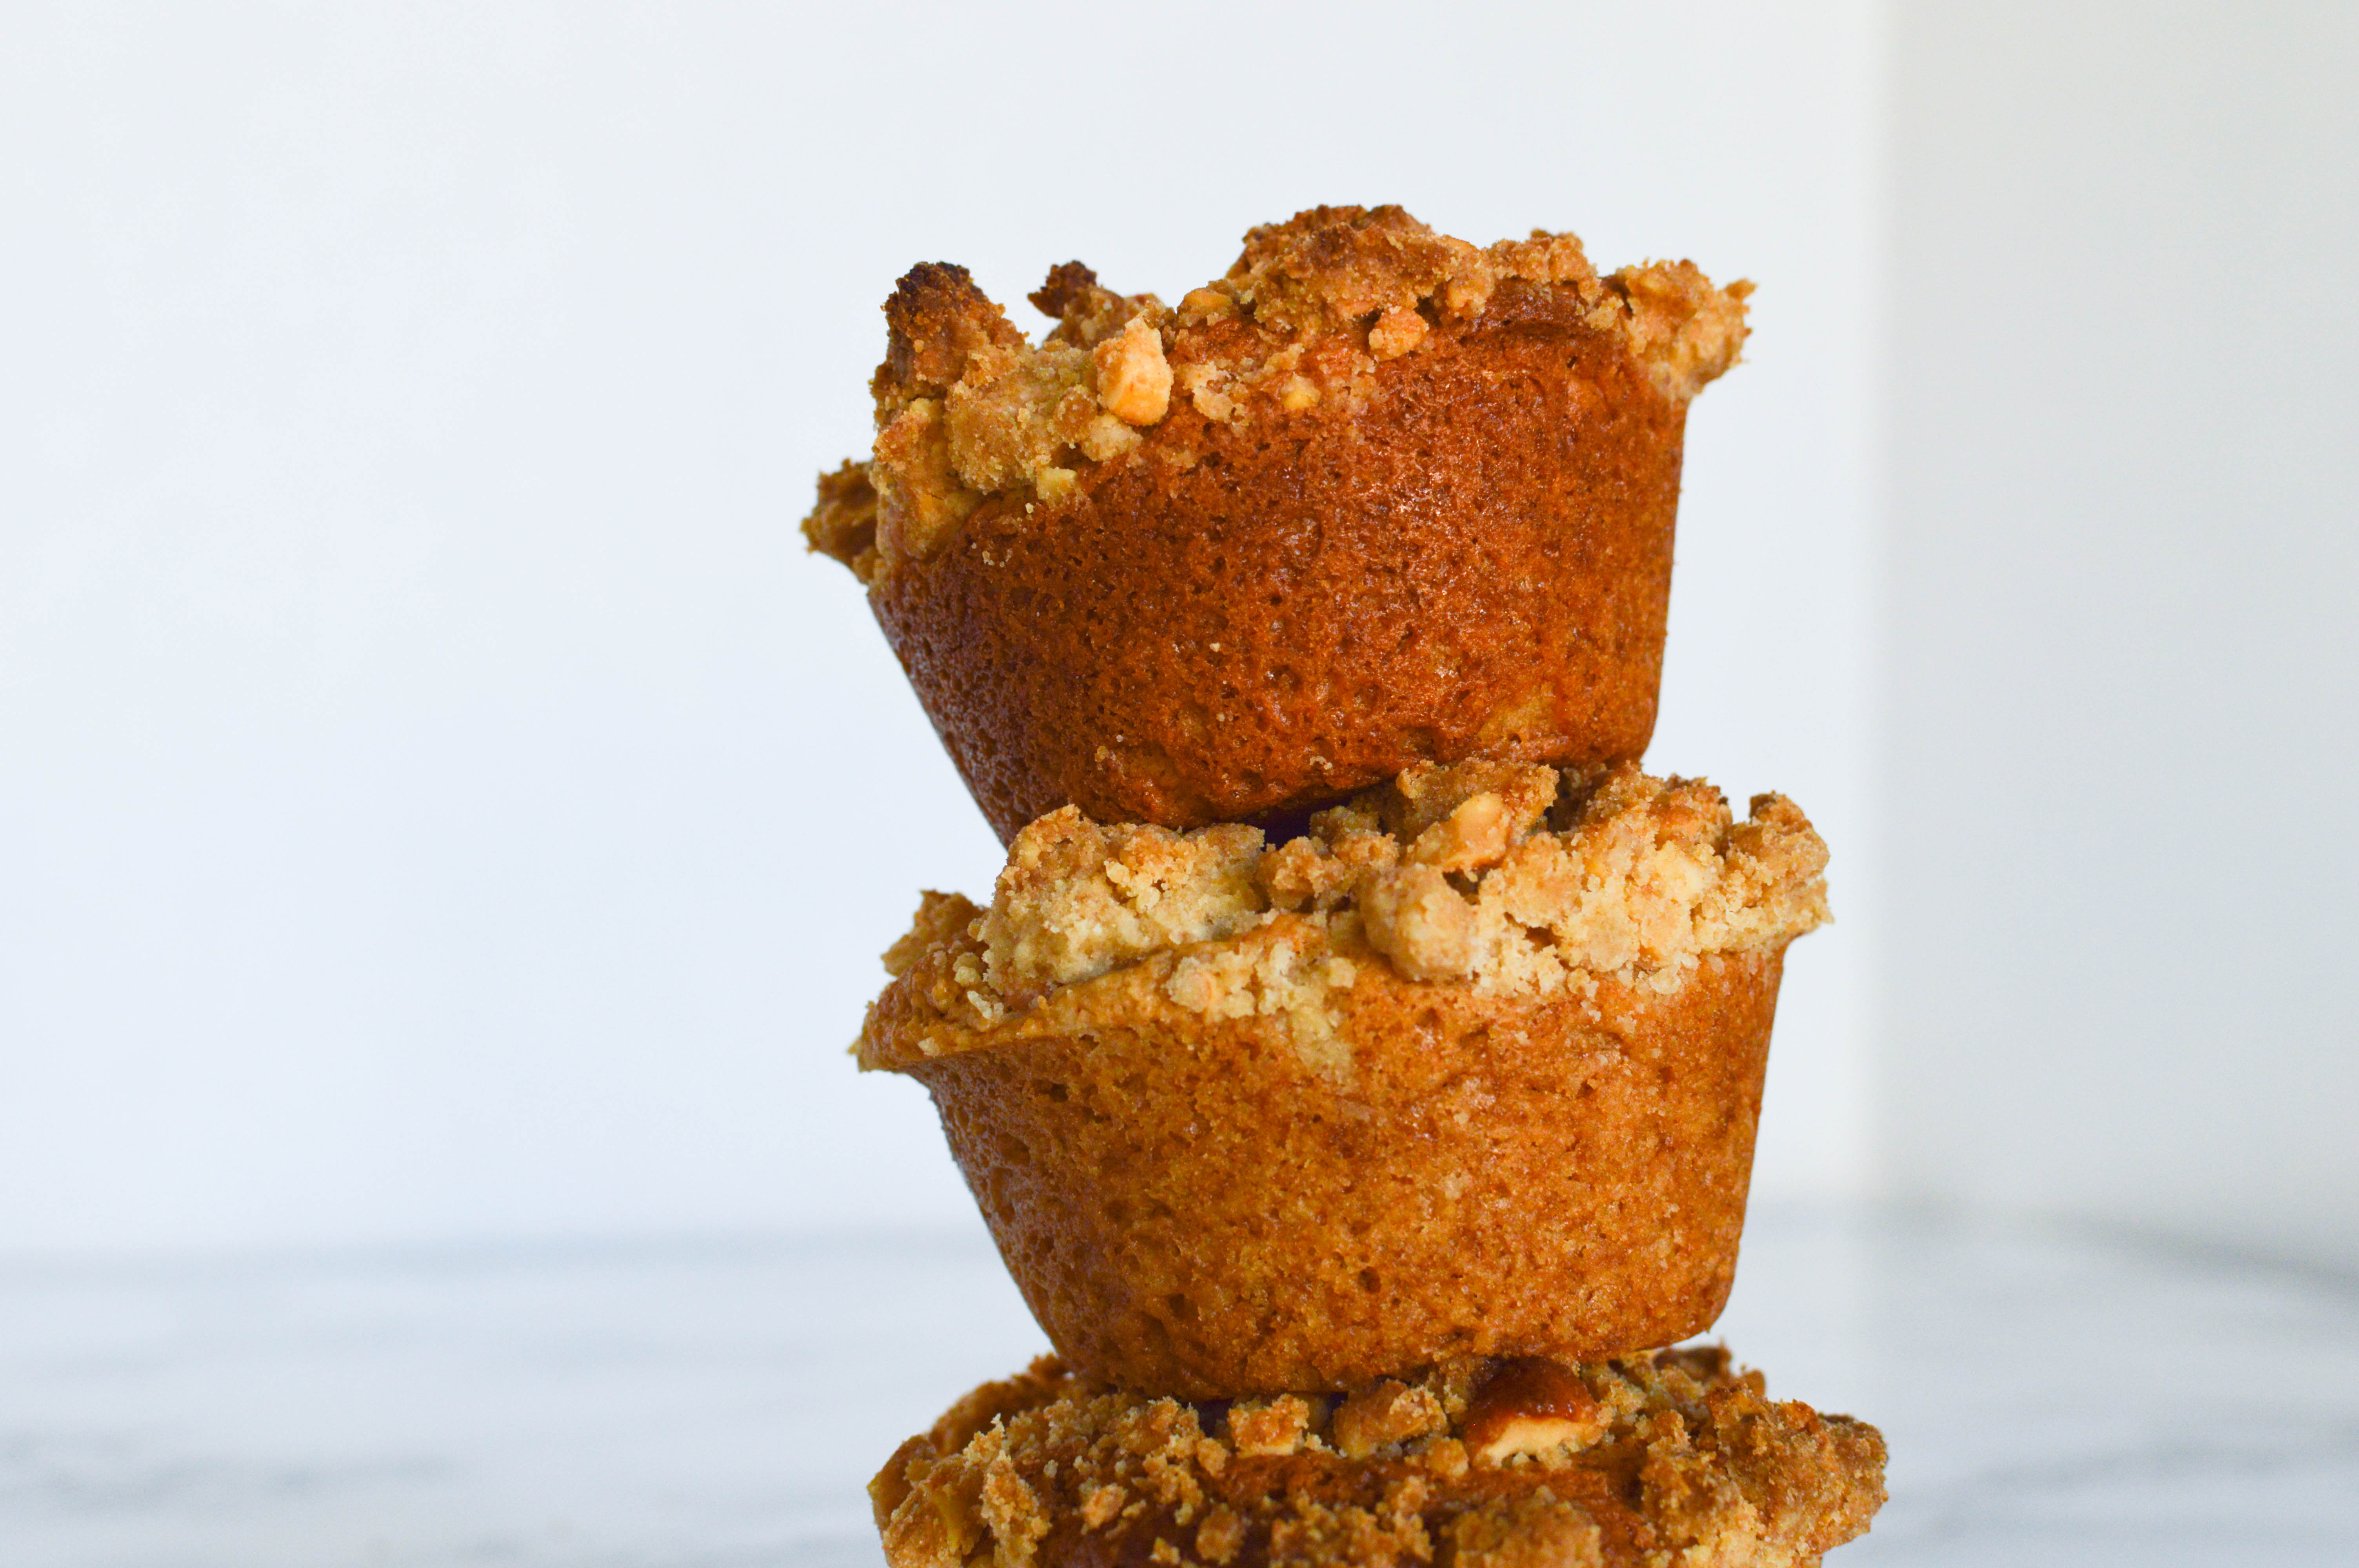 baked occasionally peanut butter jelly muffins | wee eats